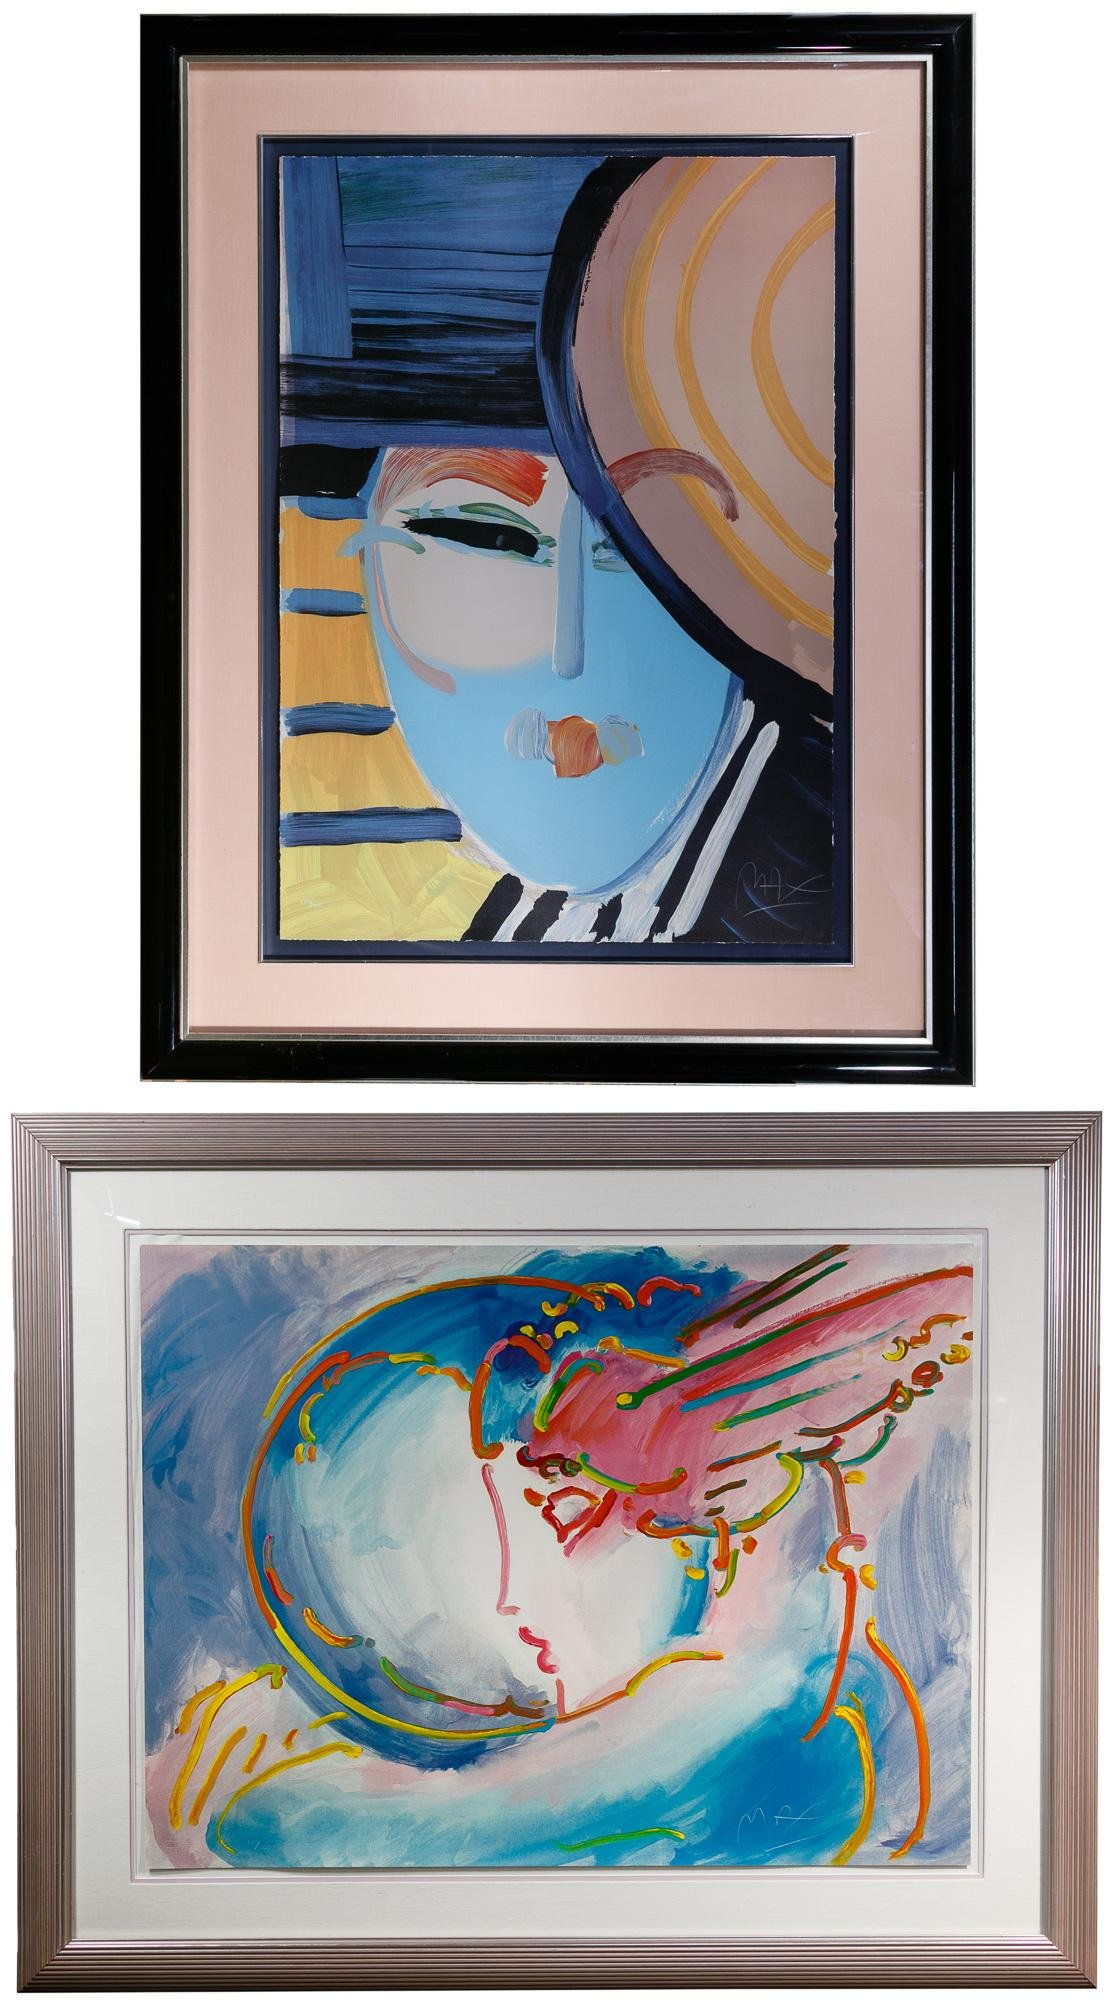 Peter Max (American, b.1937) 'Deco Lady' Lithograph